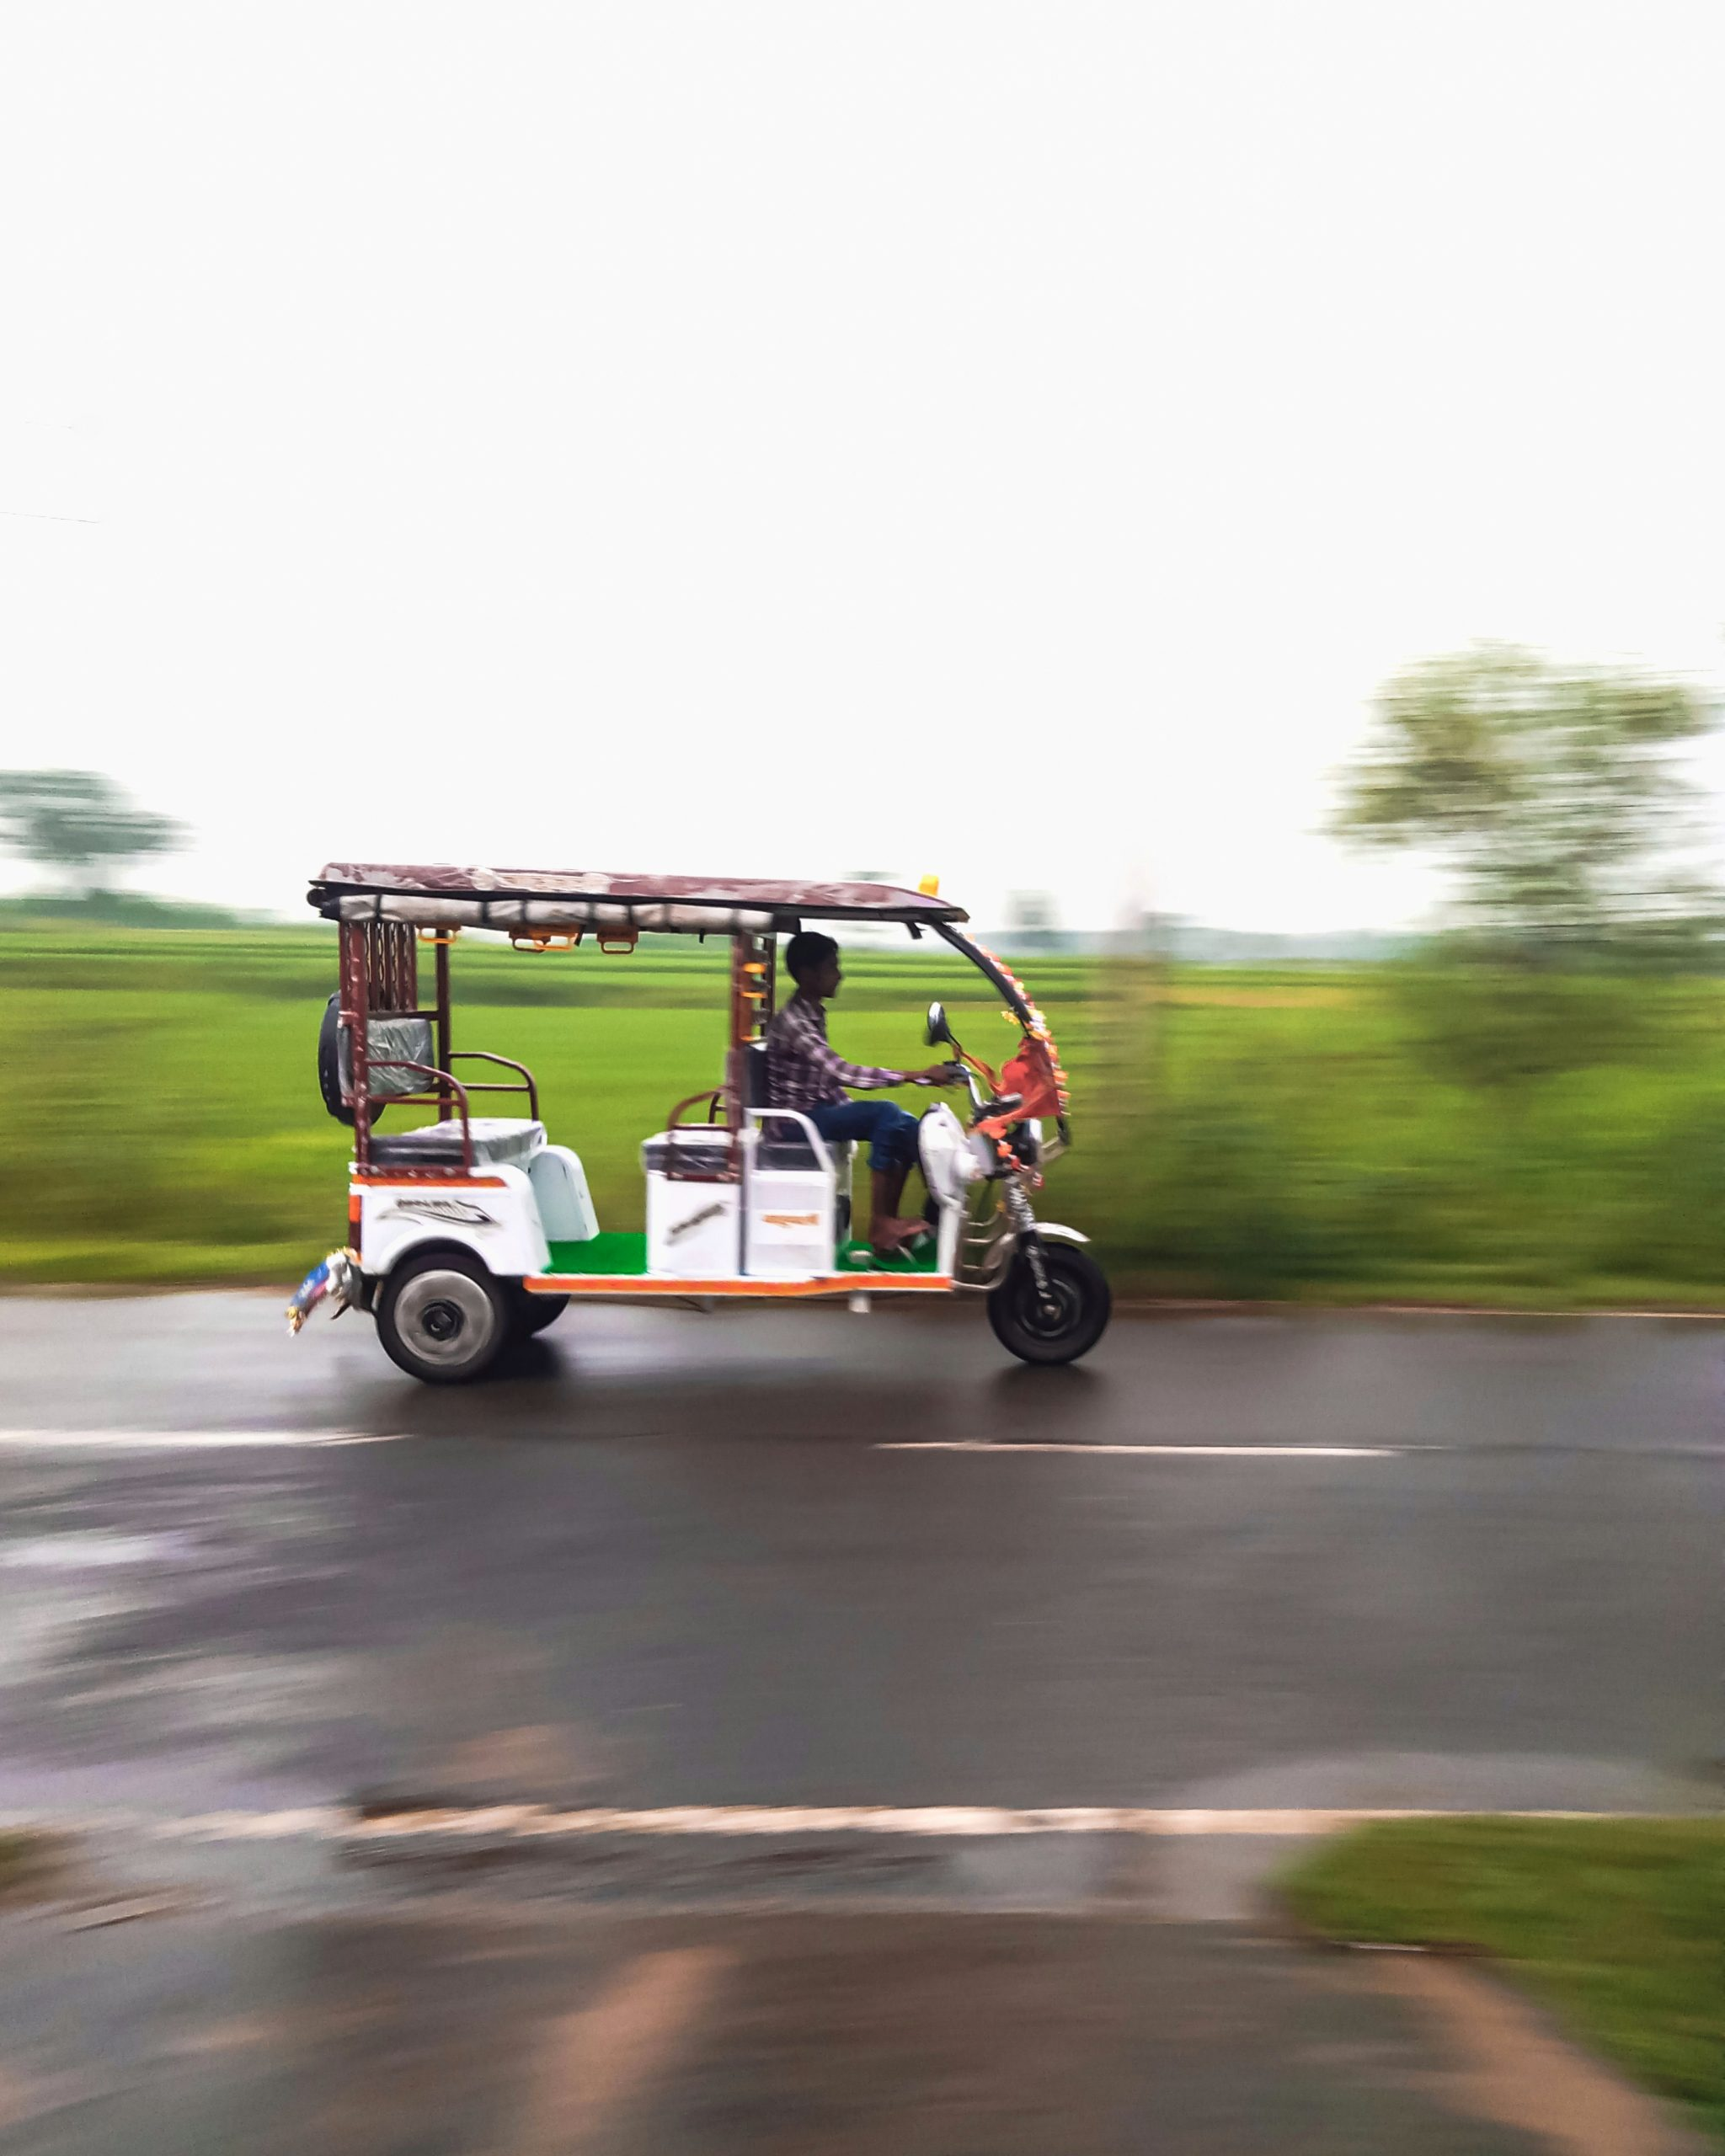 An electric rickshaw in motion